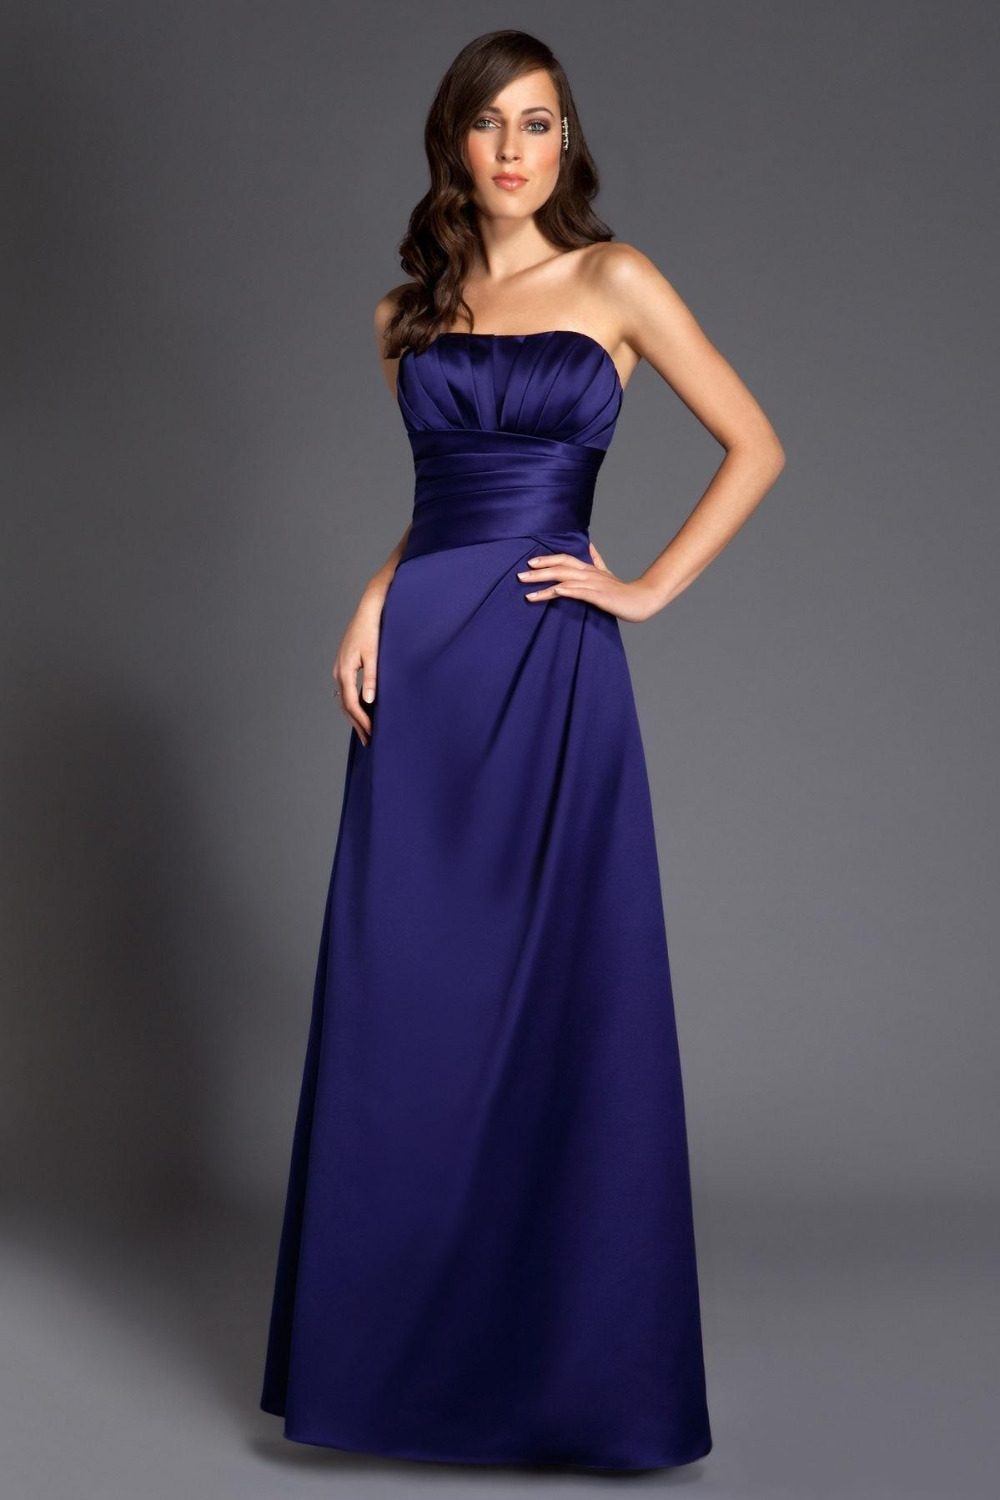 Maid of honor sexy formal cheap 2015 dark navy blue bridesmaid maid of honor sexy formal cheap 2015 dark navy blue bridesmaid dresses long floor length beach dress plus size for wedding in bridesmaid dresses from ombrellifo Image collections